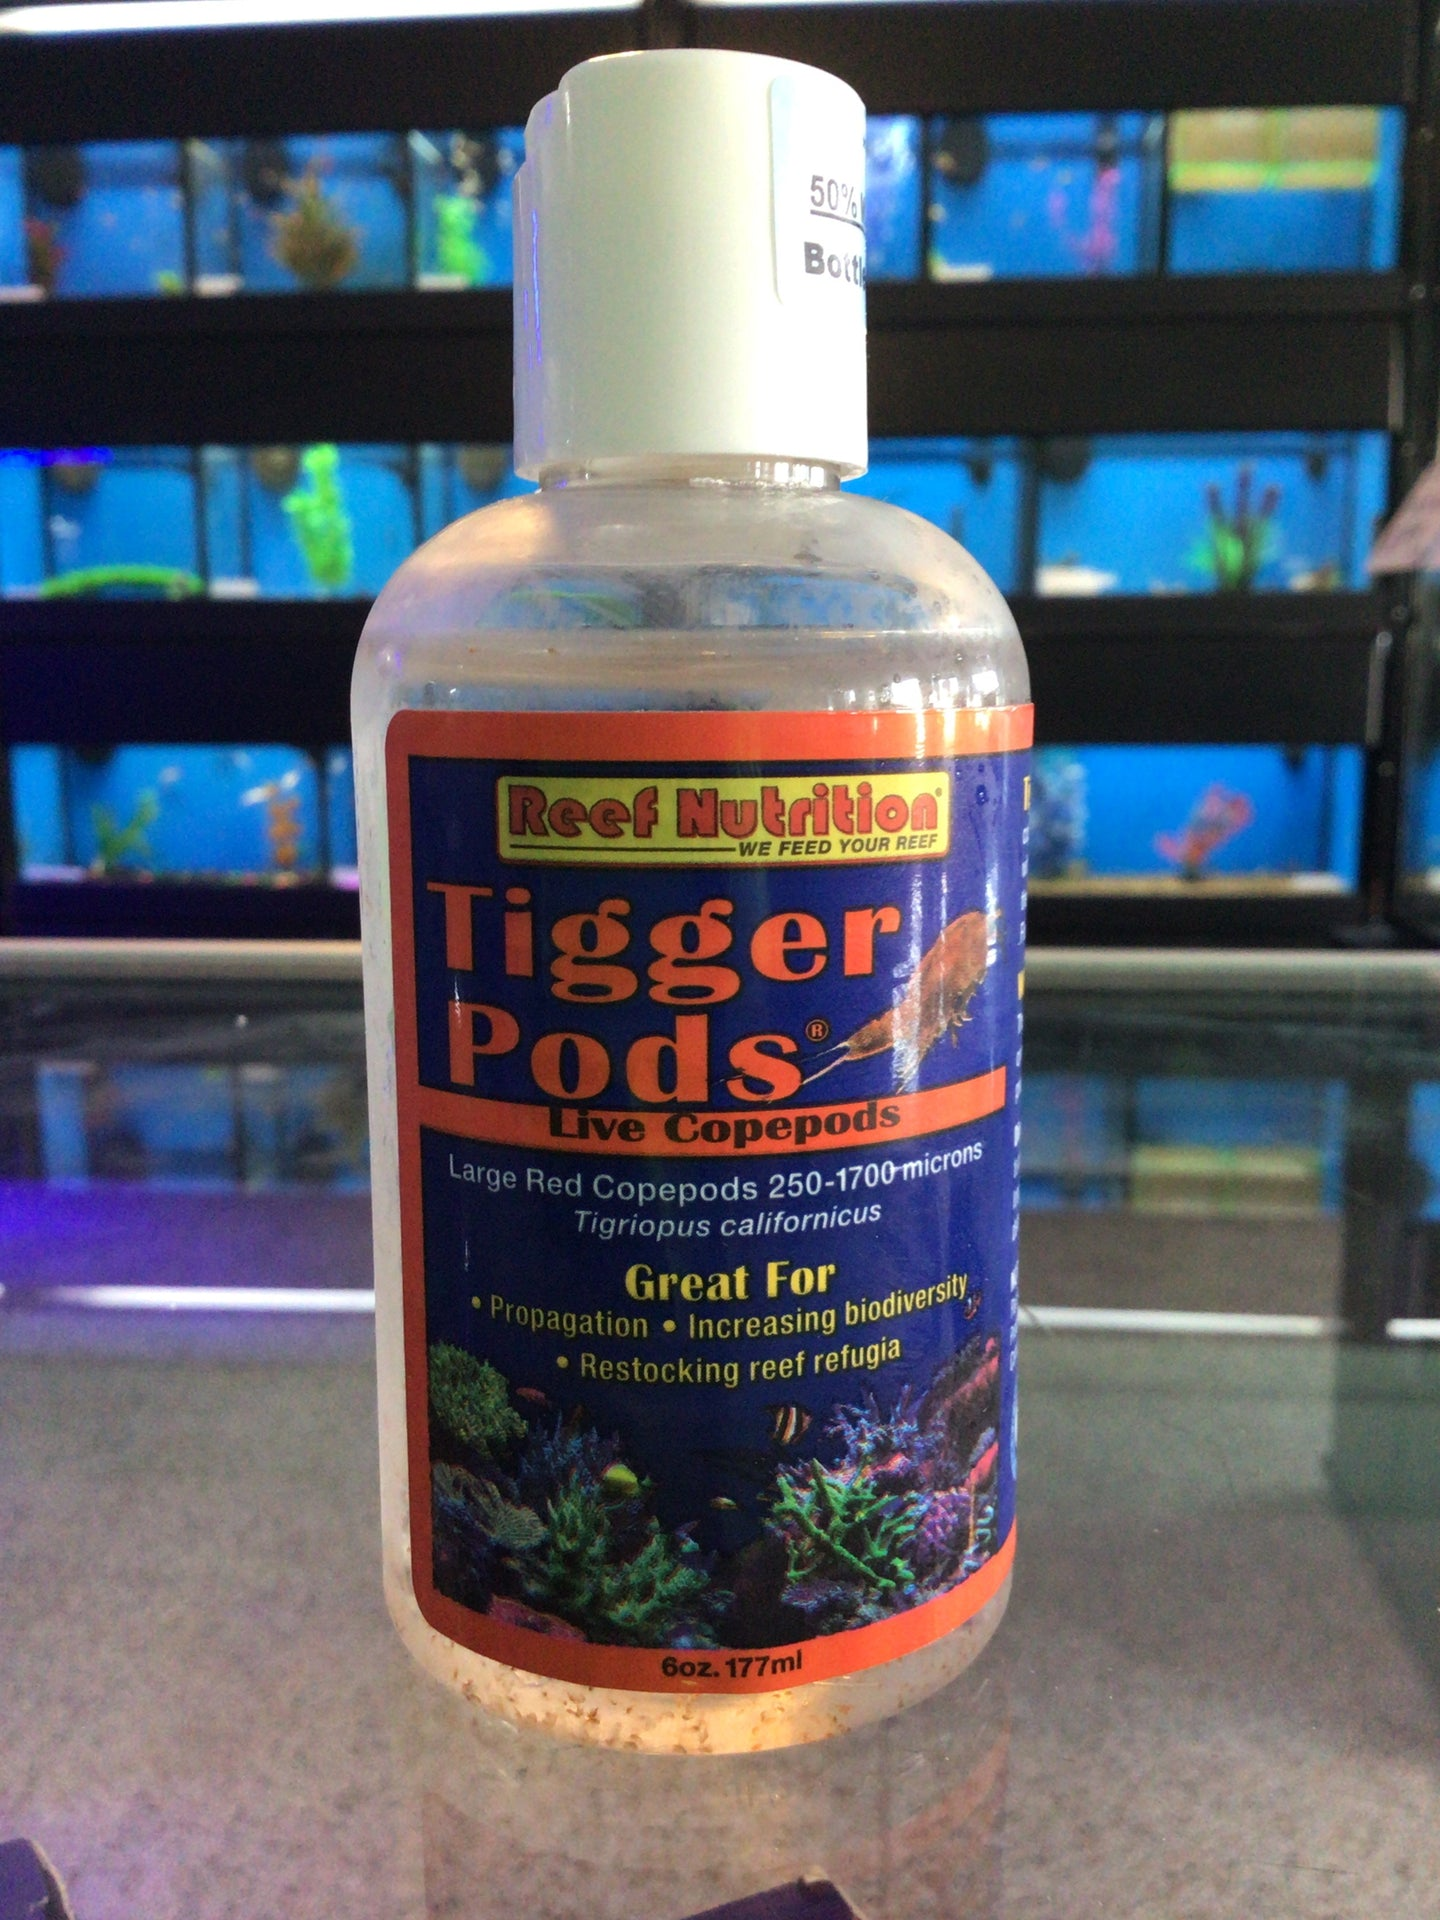 Reef nutrition Tigger Pods- Live Copepods 6 oz